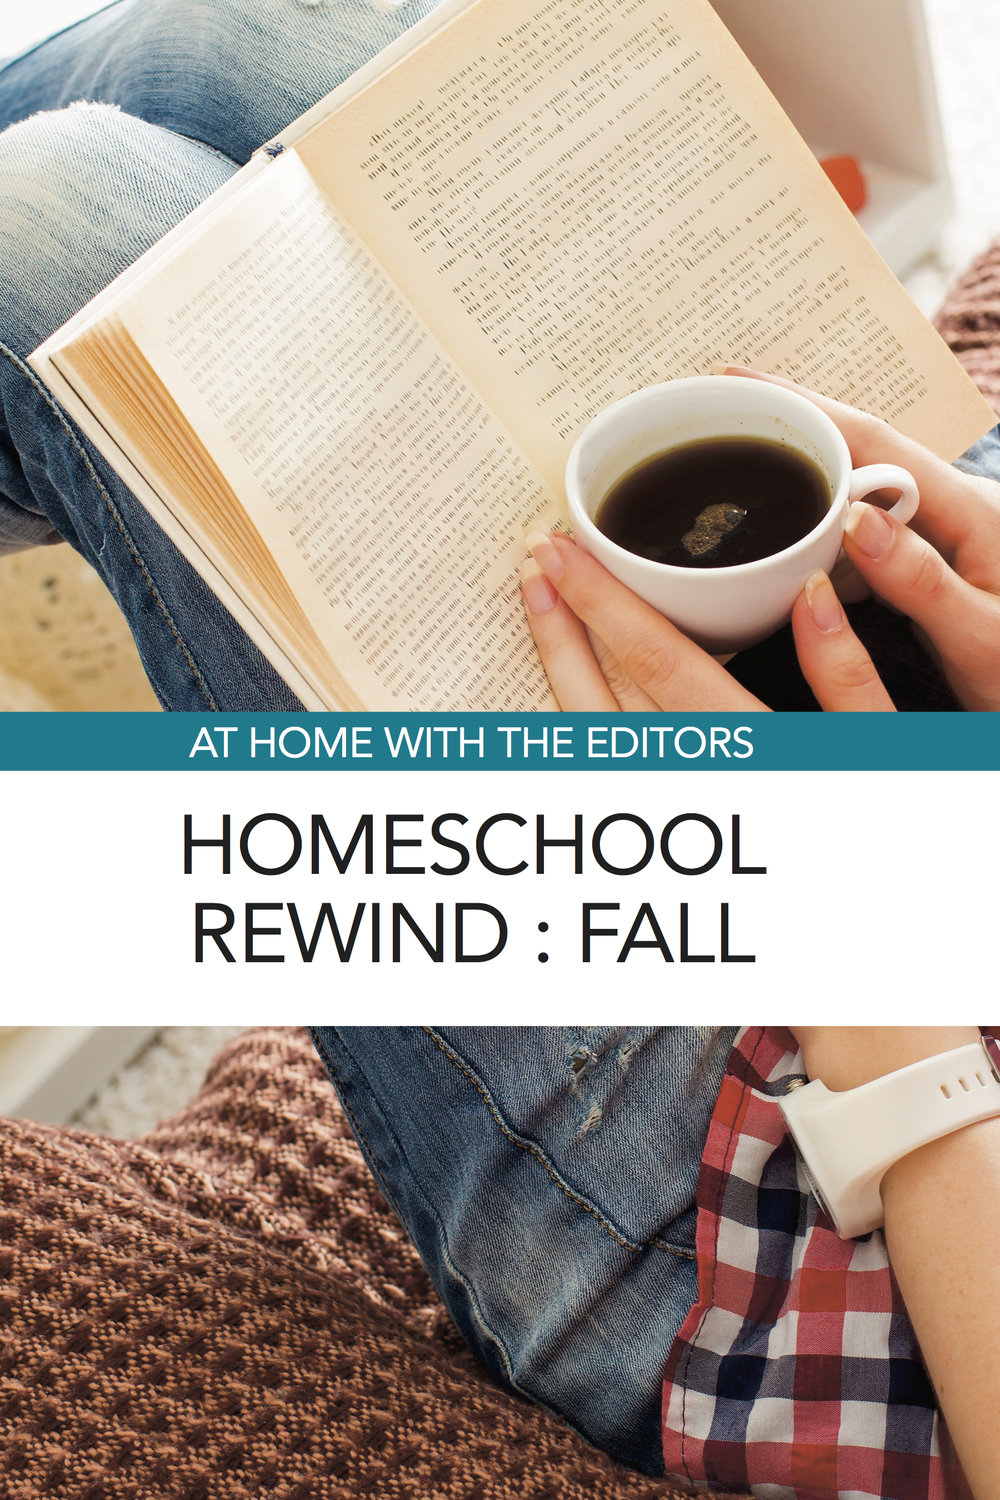 Homeschool Rewind: Fall